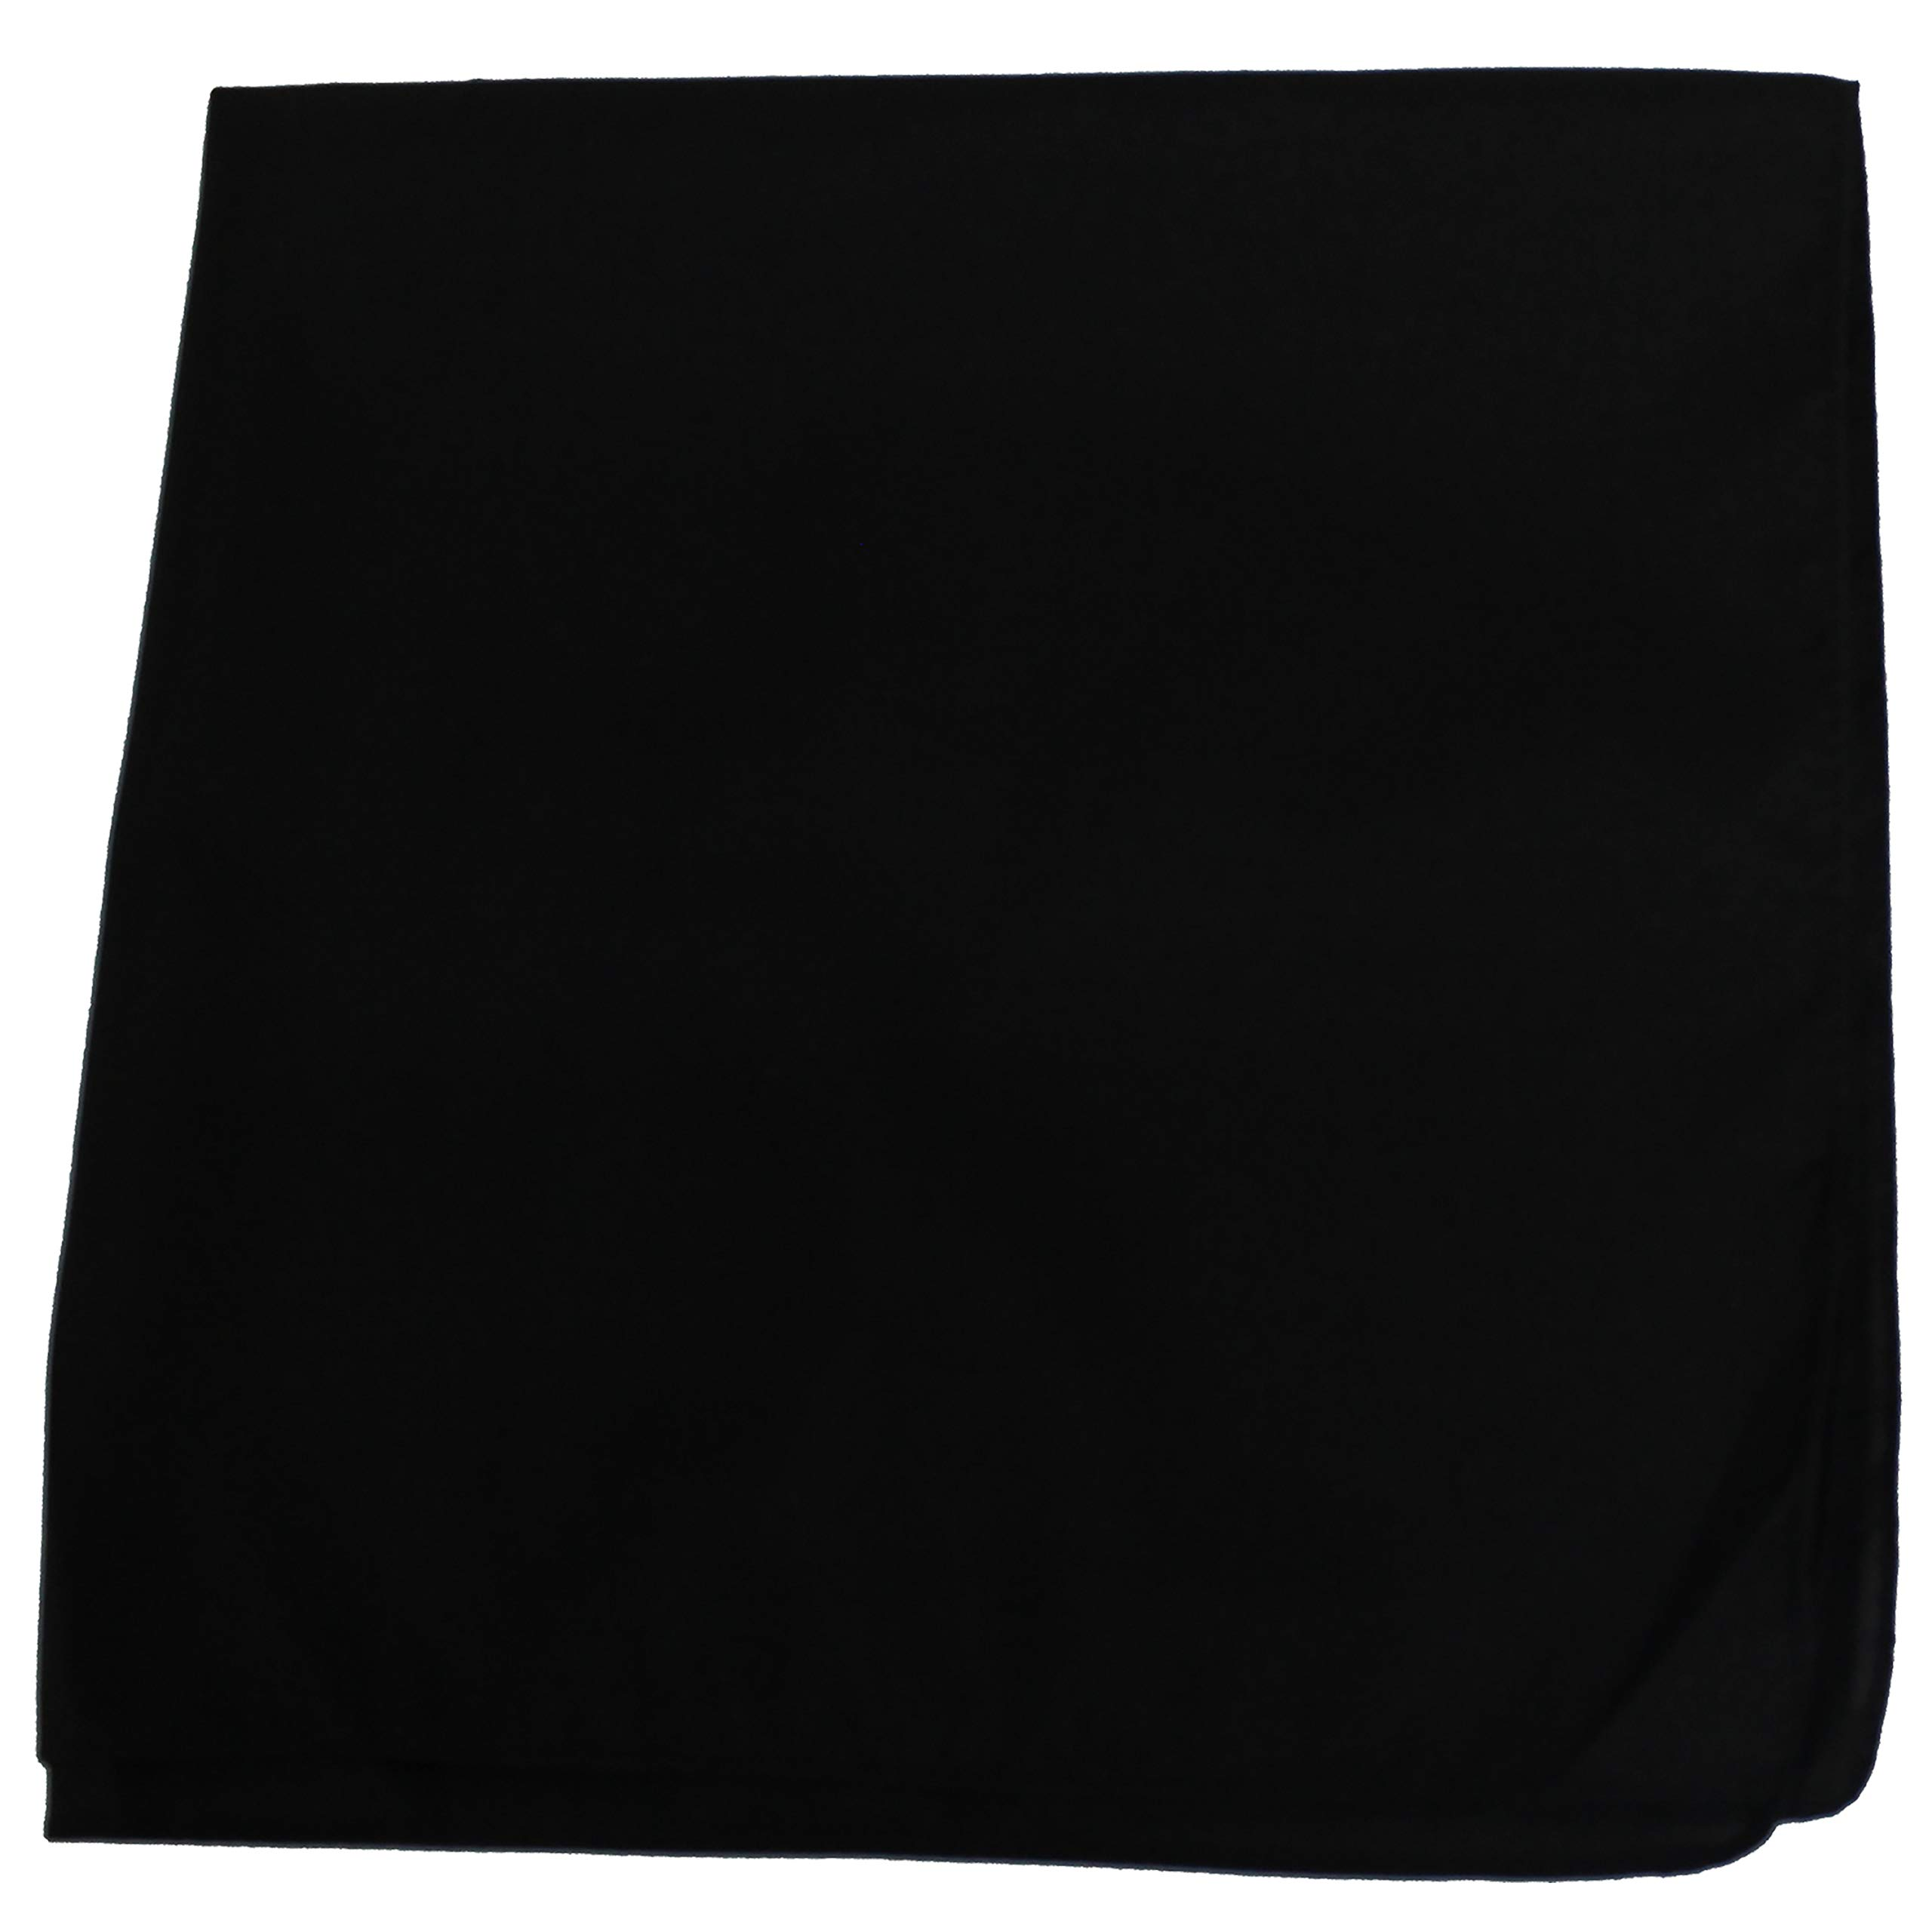 Pack of 2 Solid 100% Cotton Extra Large Bandanas - 27 x 27 Inches / 68 x 68 cm